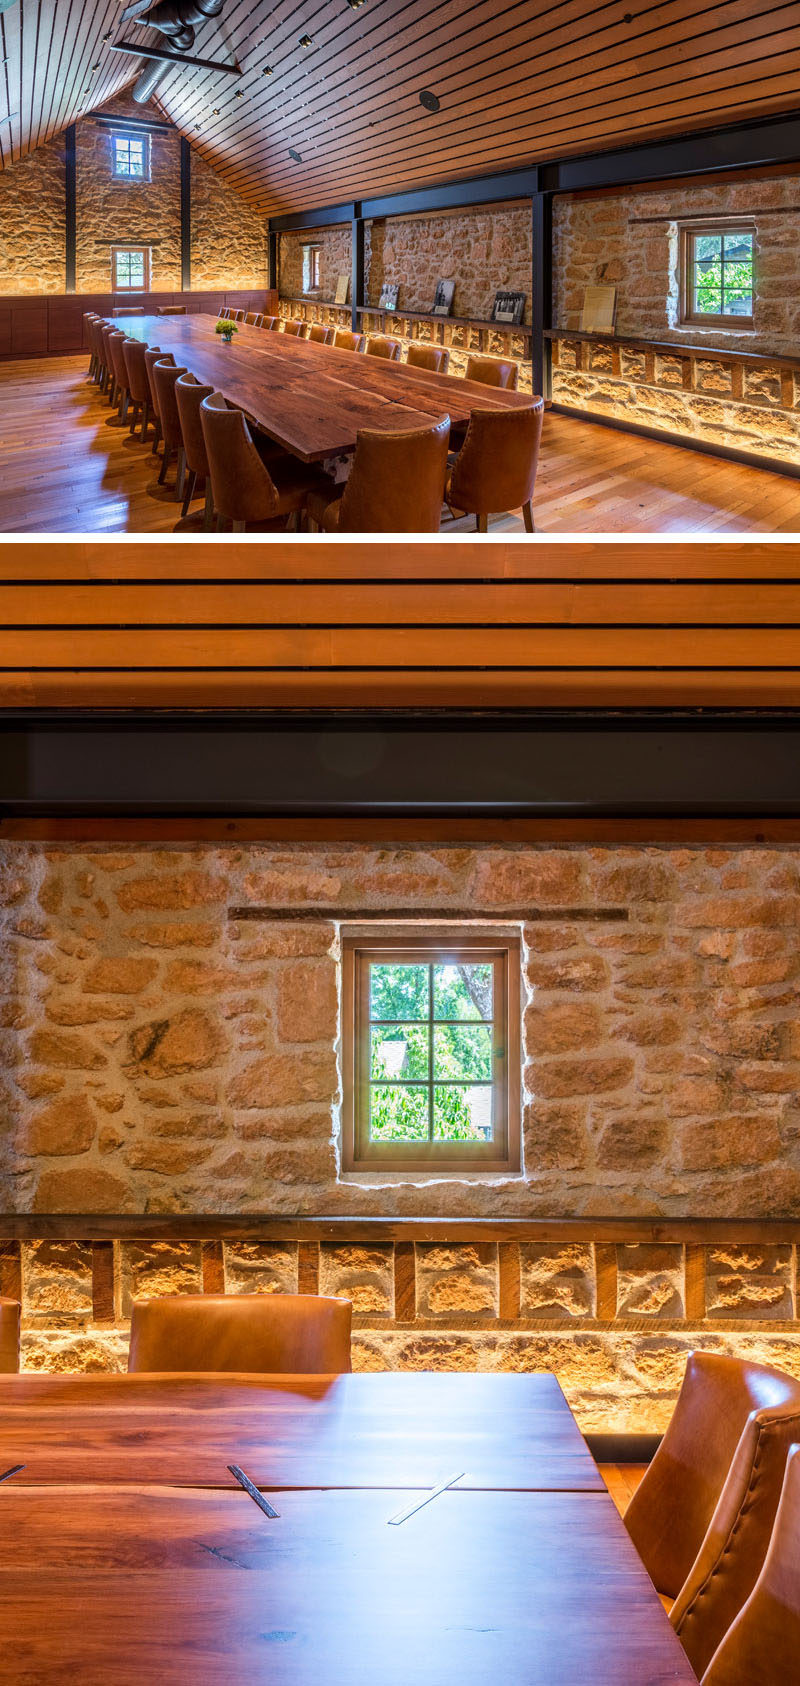 Contemporary touches like hidden lighting were added to the interior of this historic building to highlight the stone work of the original building.